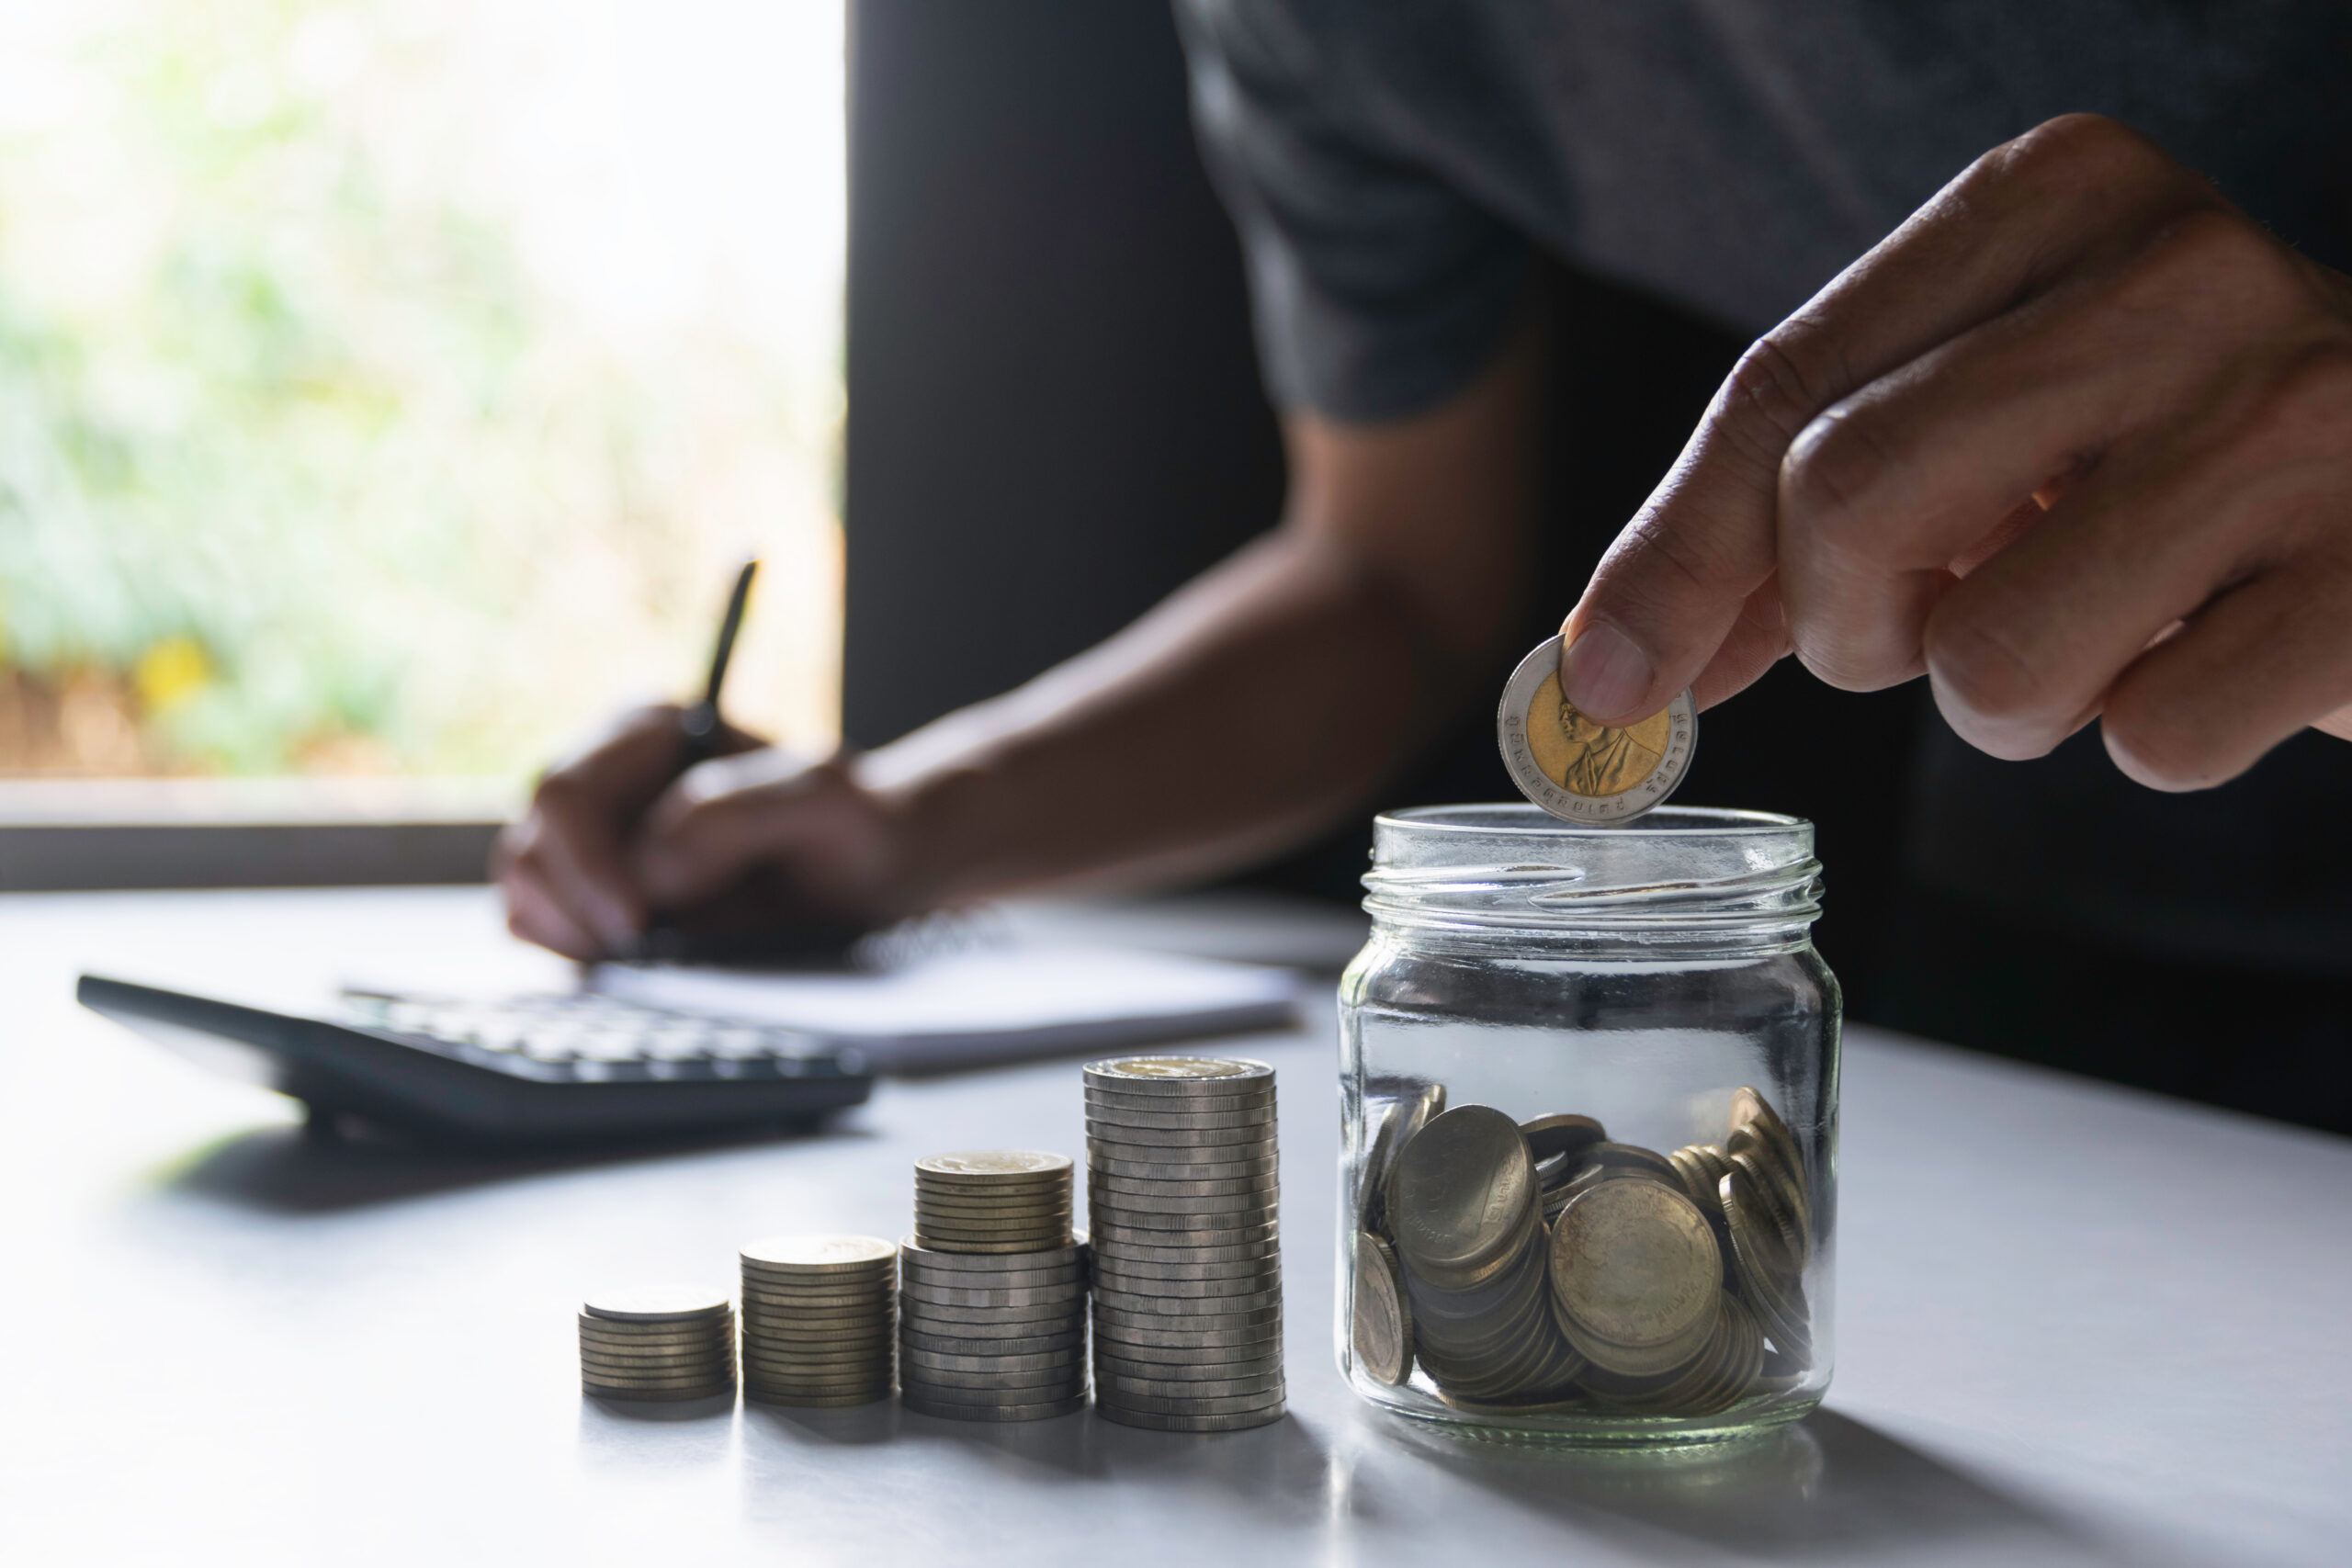 Counting Saved Money in a Jar